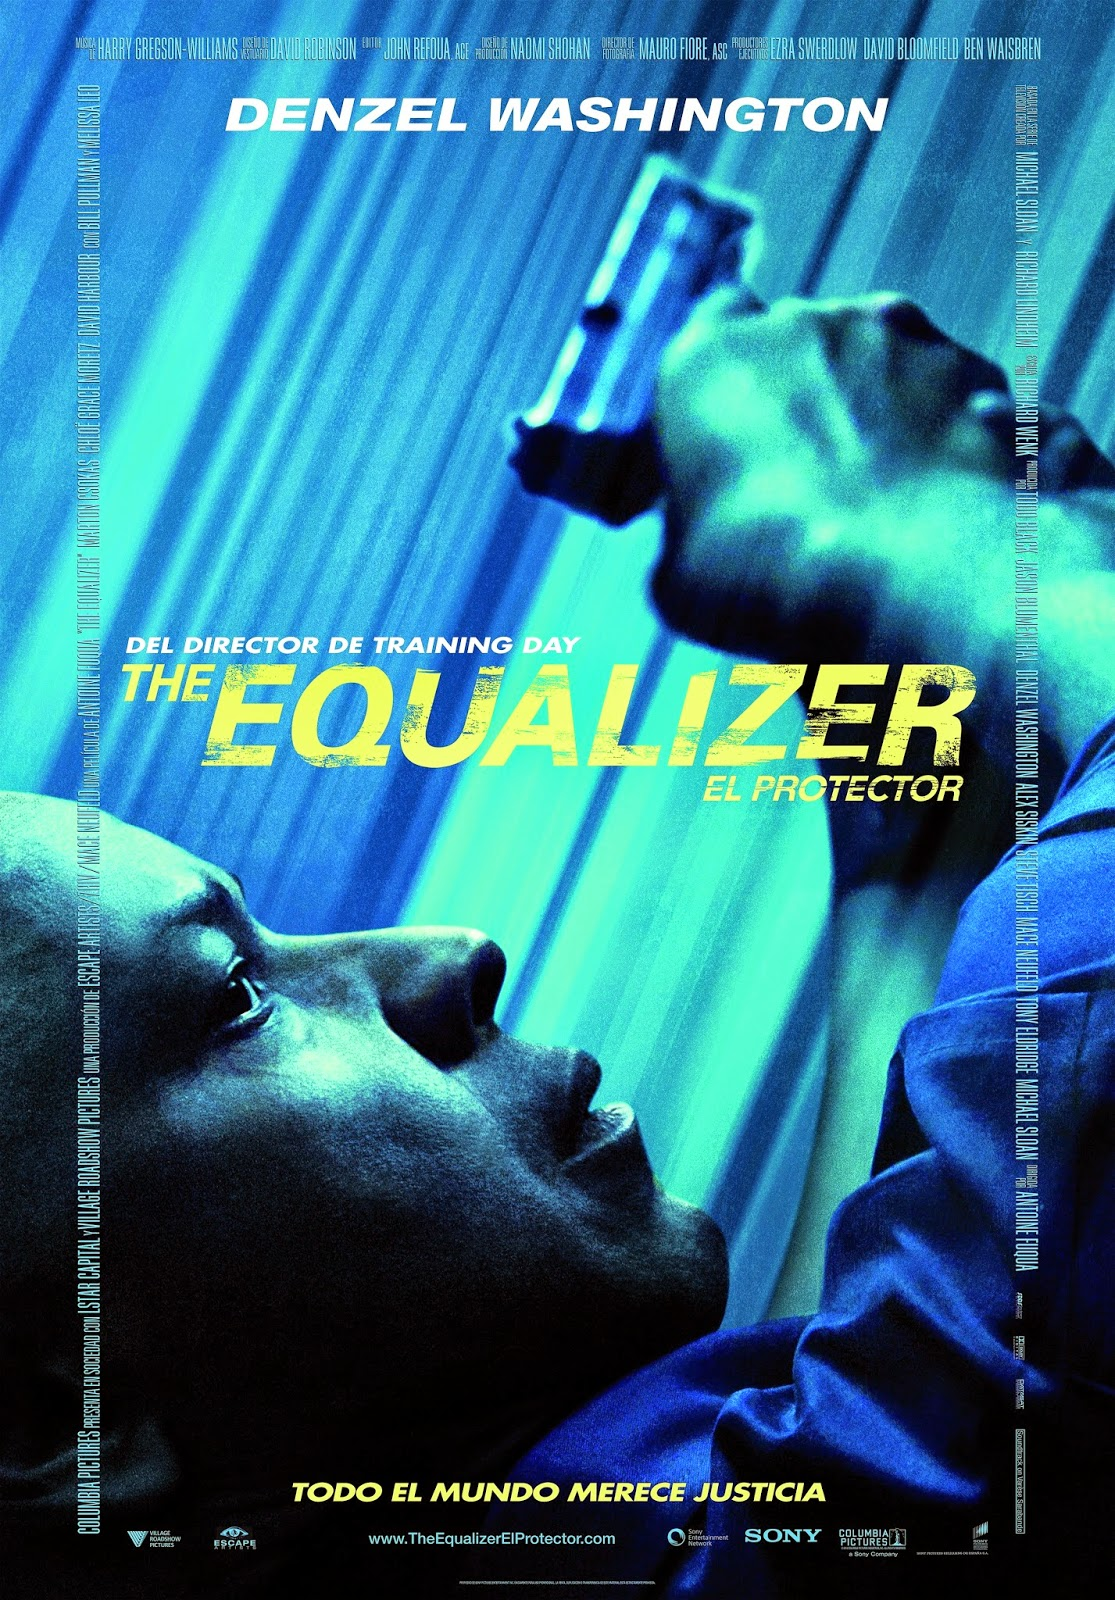 The Equalizer (El protector) - póster